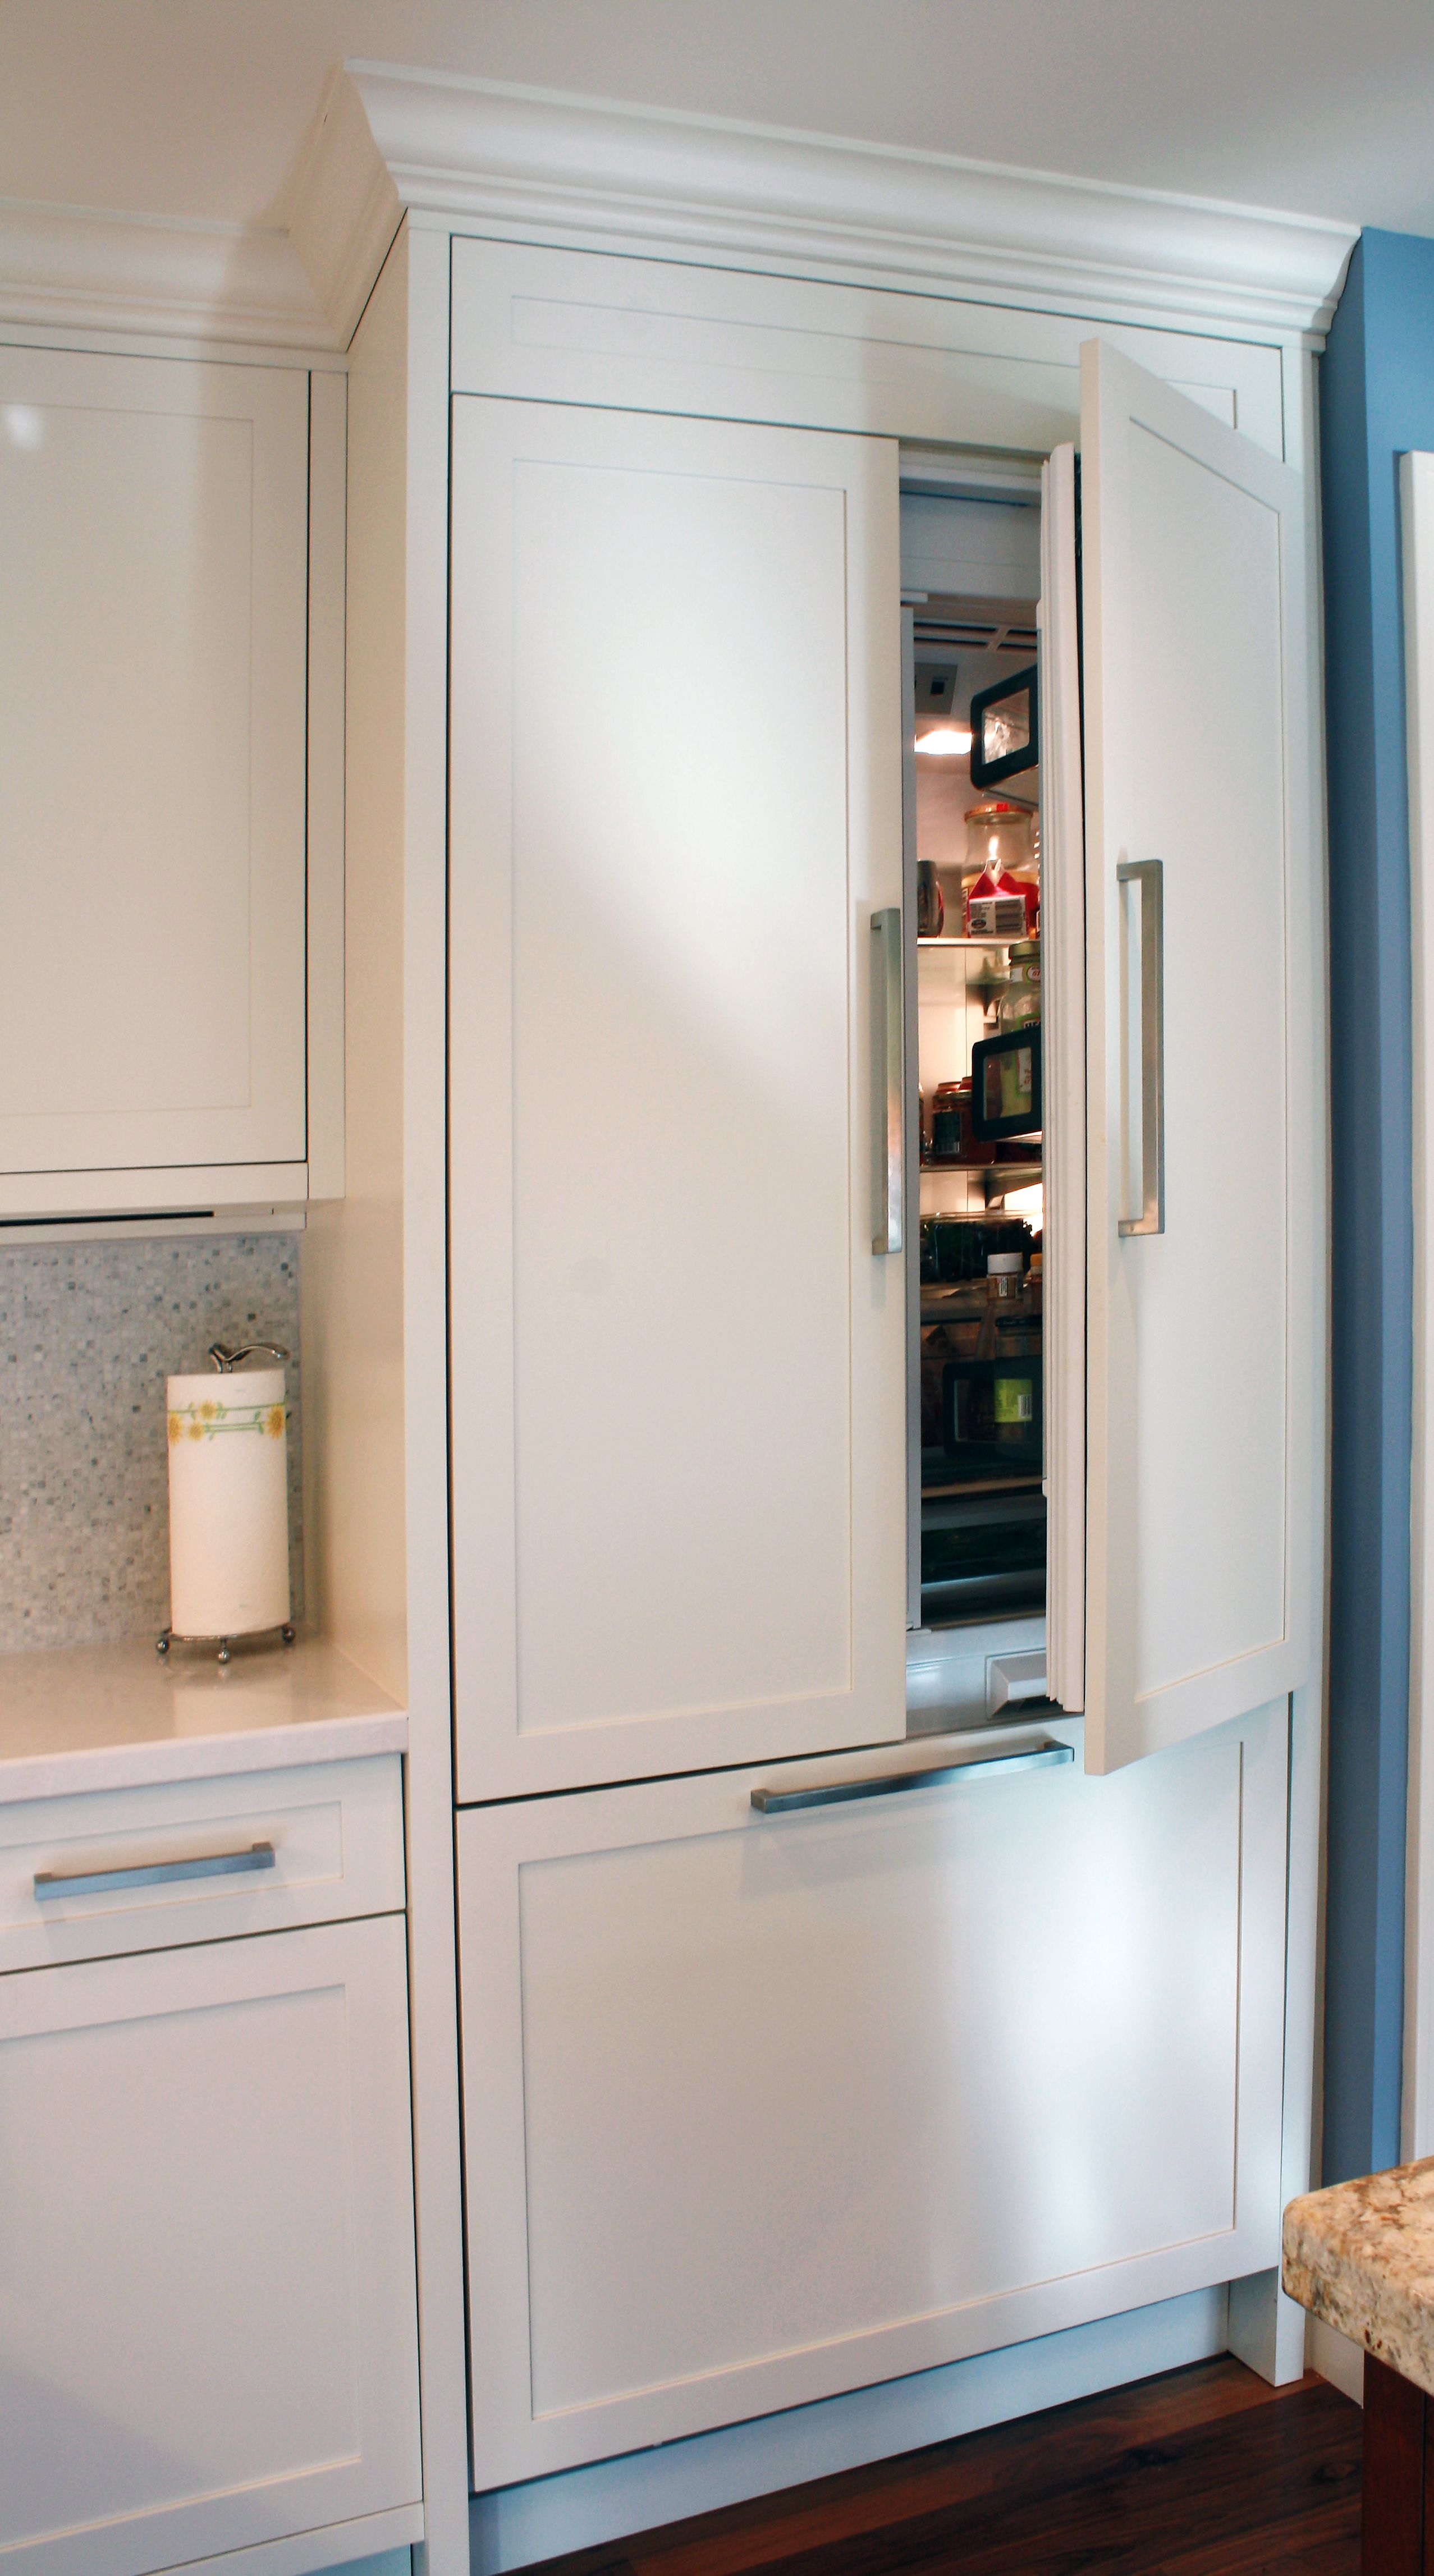 painted :: meridian door style #kitchen #cabinets #painted ...